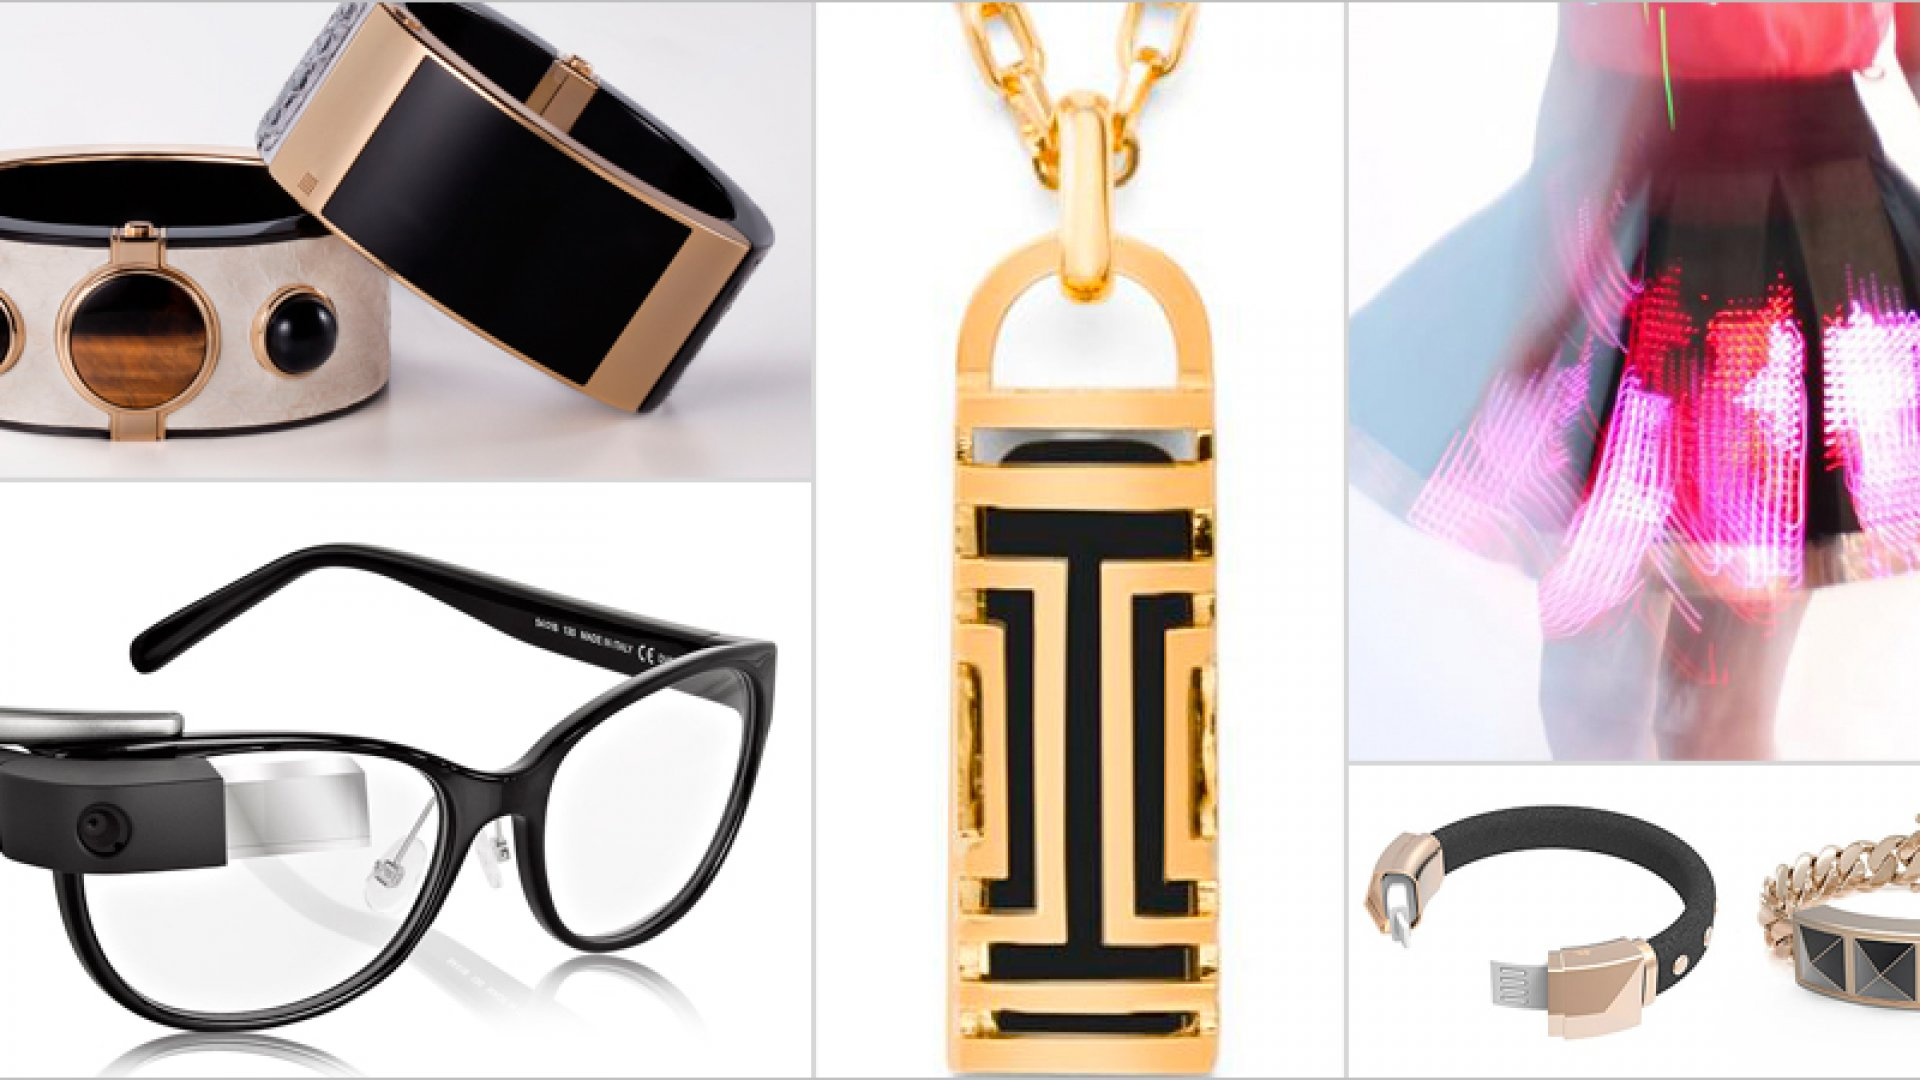 Tech is all dolled up for New York Fashion Week. Intel this week debuted--in partnership with Opening Ceremony--the MICA communications bracelet, at upper left. Designer Tory Burch this year launched a jewelry line to encase wearer's Fitbit devices; a pendant necklace is at center. A smartphone-powered light-up skirt by CuteCircuits is pictured at top right; a pair of Rebecca Minkoff devices-slash-bracelets at bottom right. Google Glass's partnership with Diane von Furstenberg is resulting in more fashion-forward styles, sold at Net a Porter. One is pictured at bottom left.